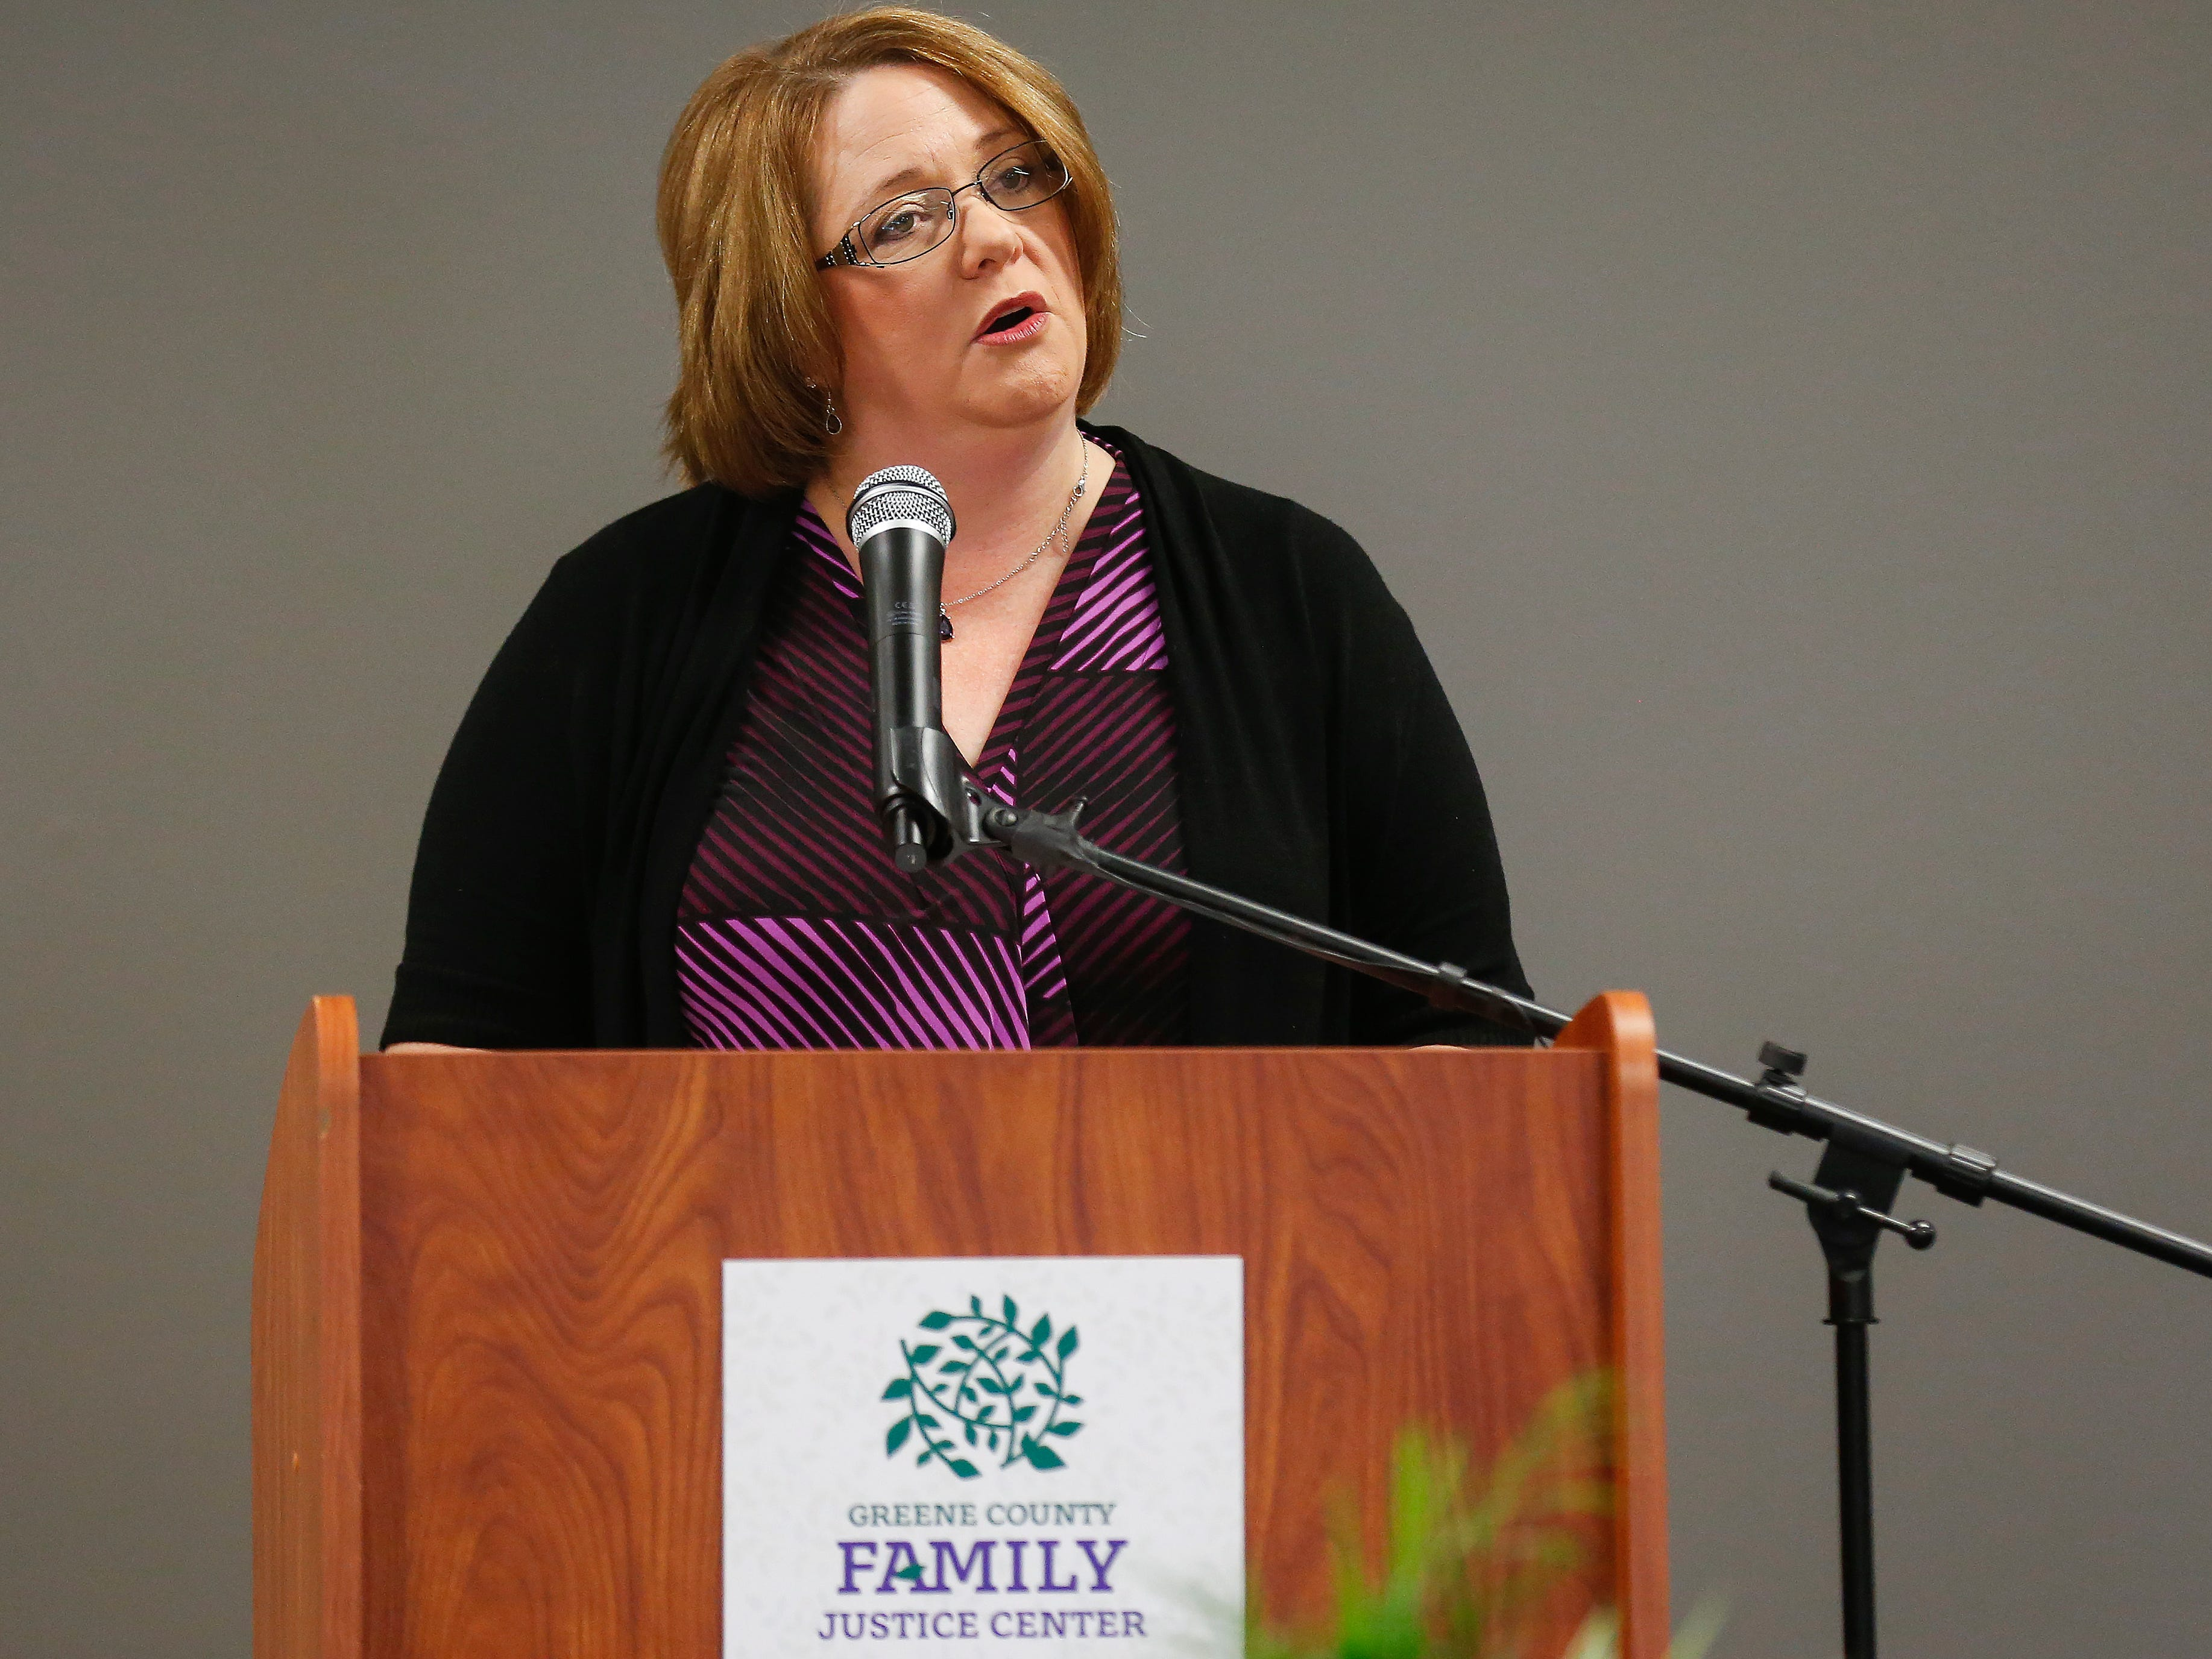 Lisa Saylor, a survivor of domestic violence and member of the Voices Committee, speaks during the ribbon cutting ceremony for the Family Justice Center on Monday, Oct. 1, 2018.